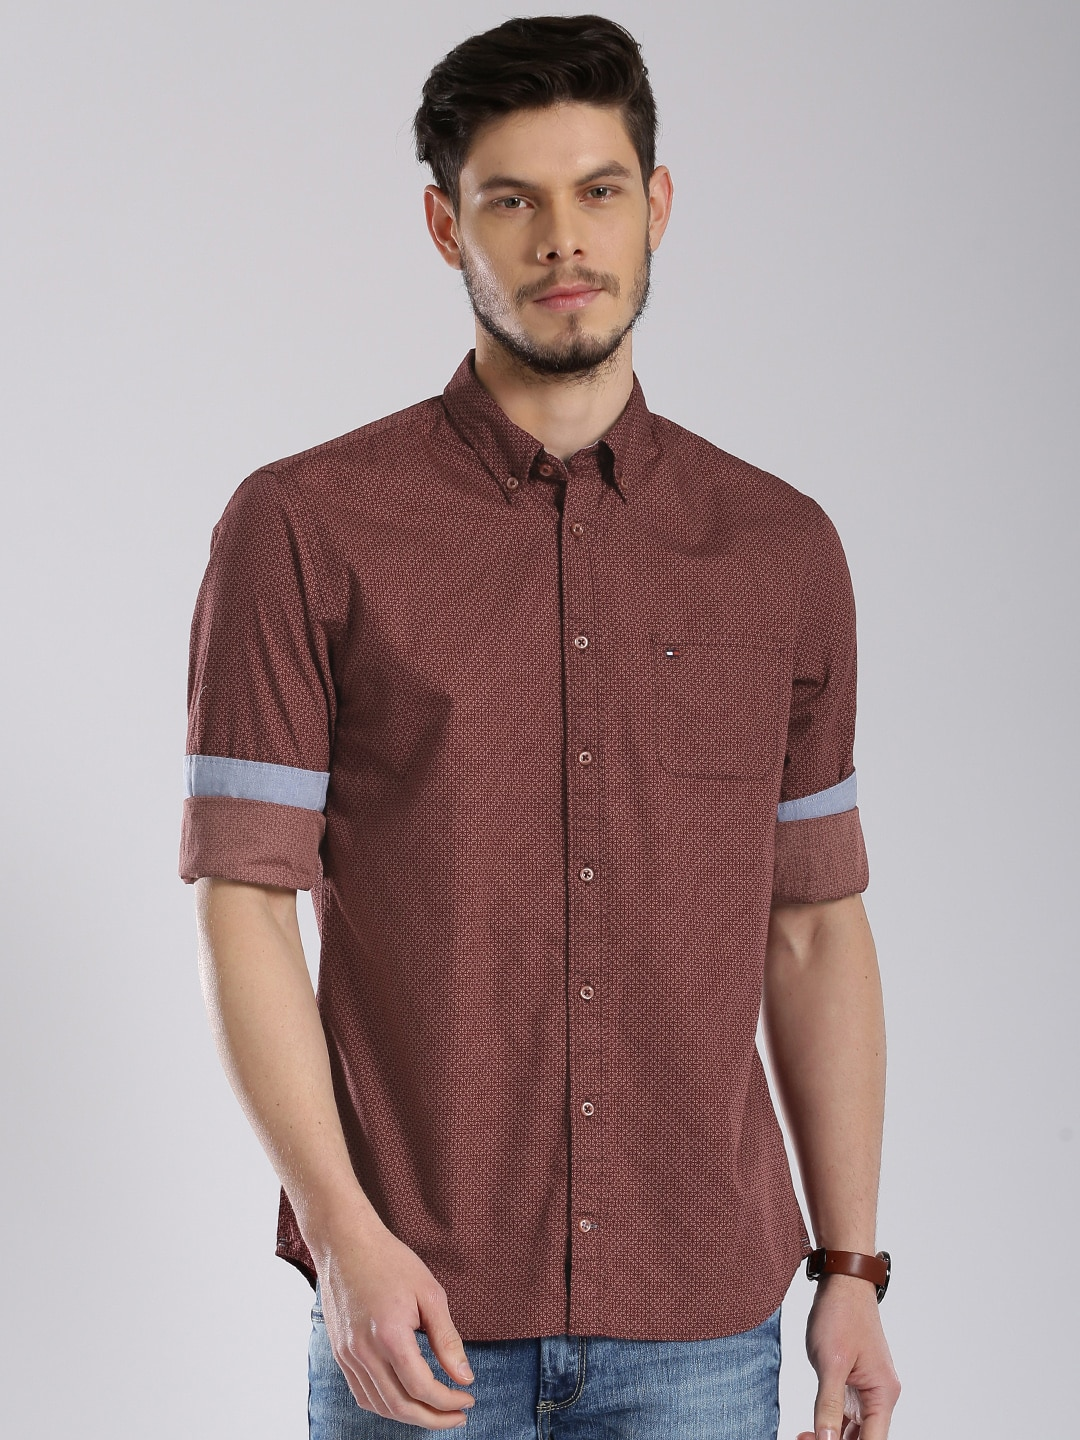 171a0e5fda930 Casual Shirts for Men - Buy Men Casual Shirt Online in India